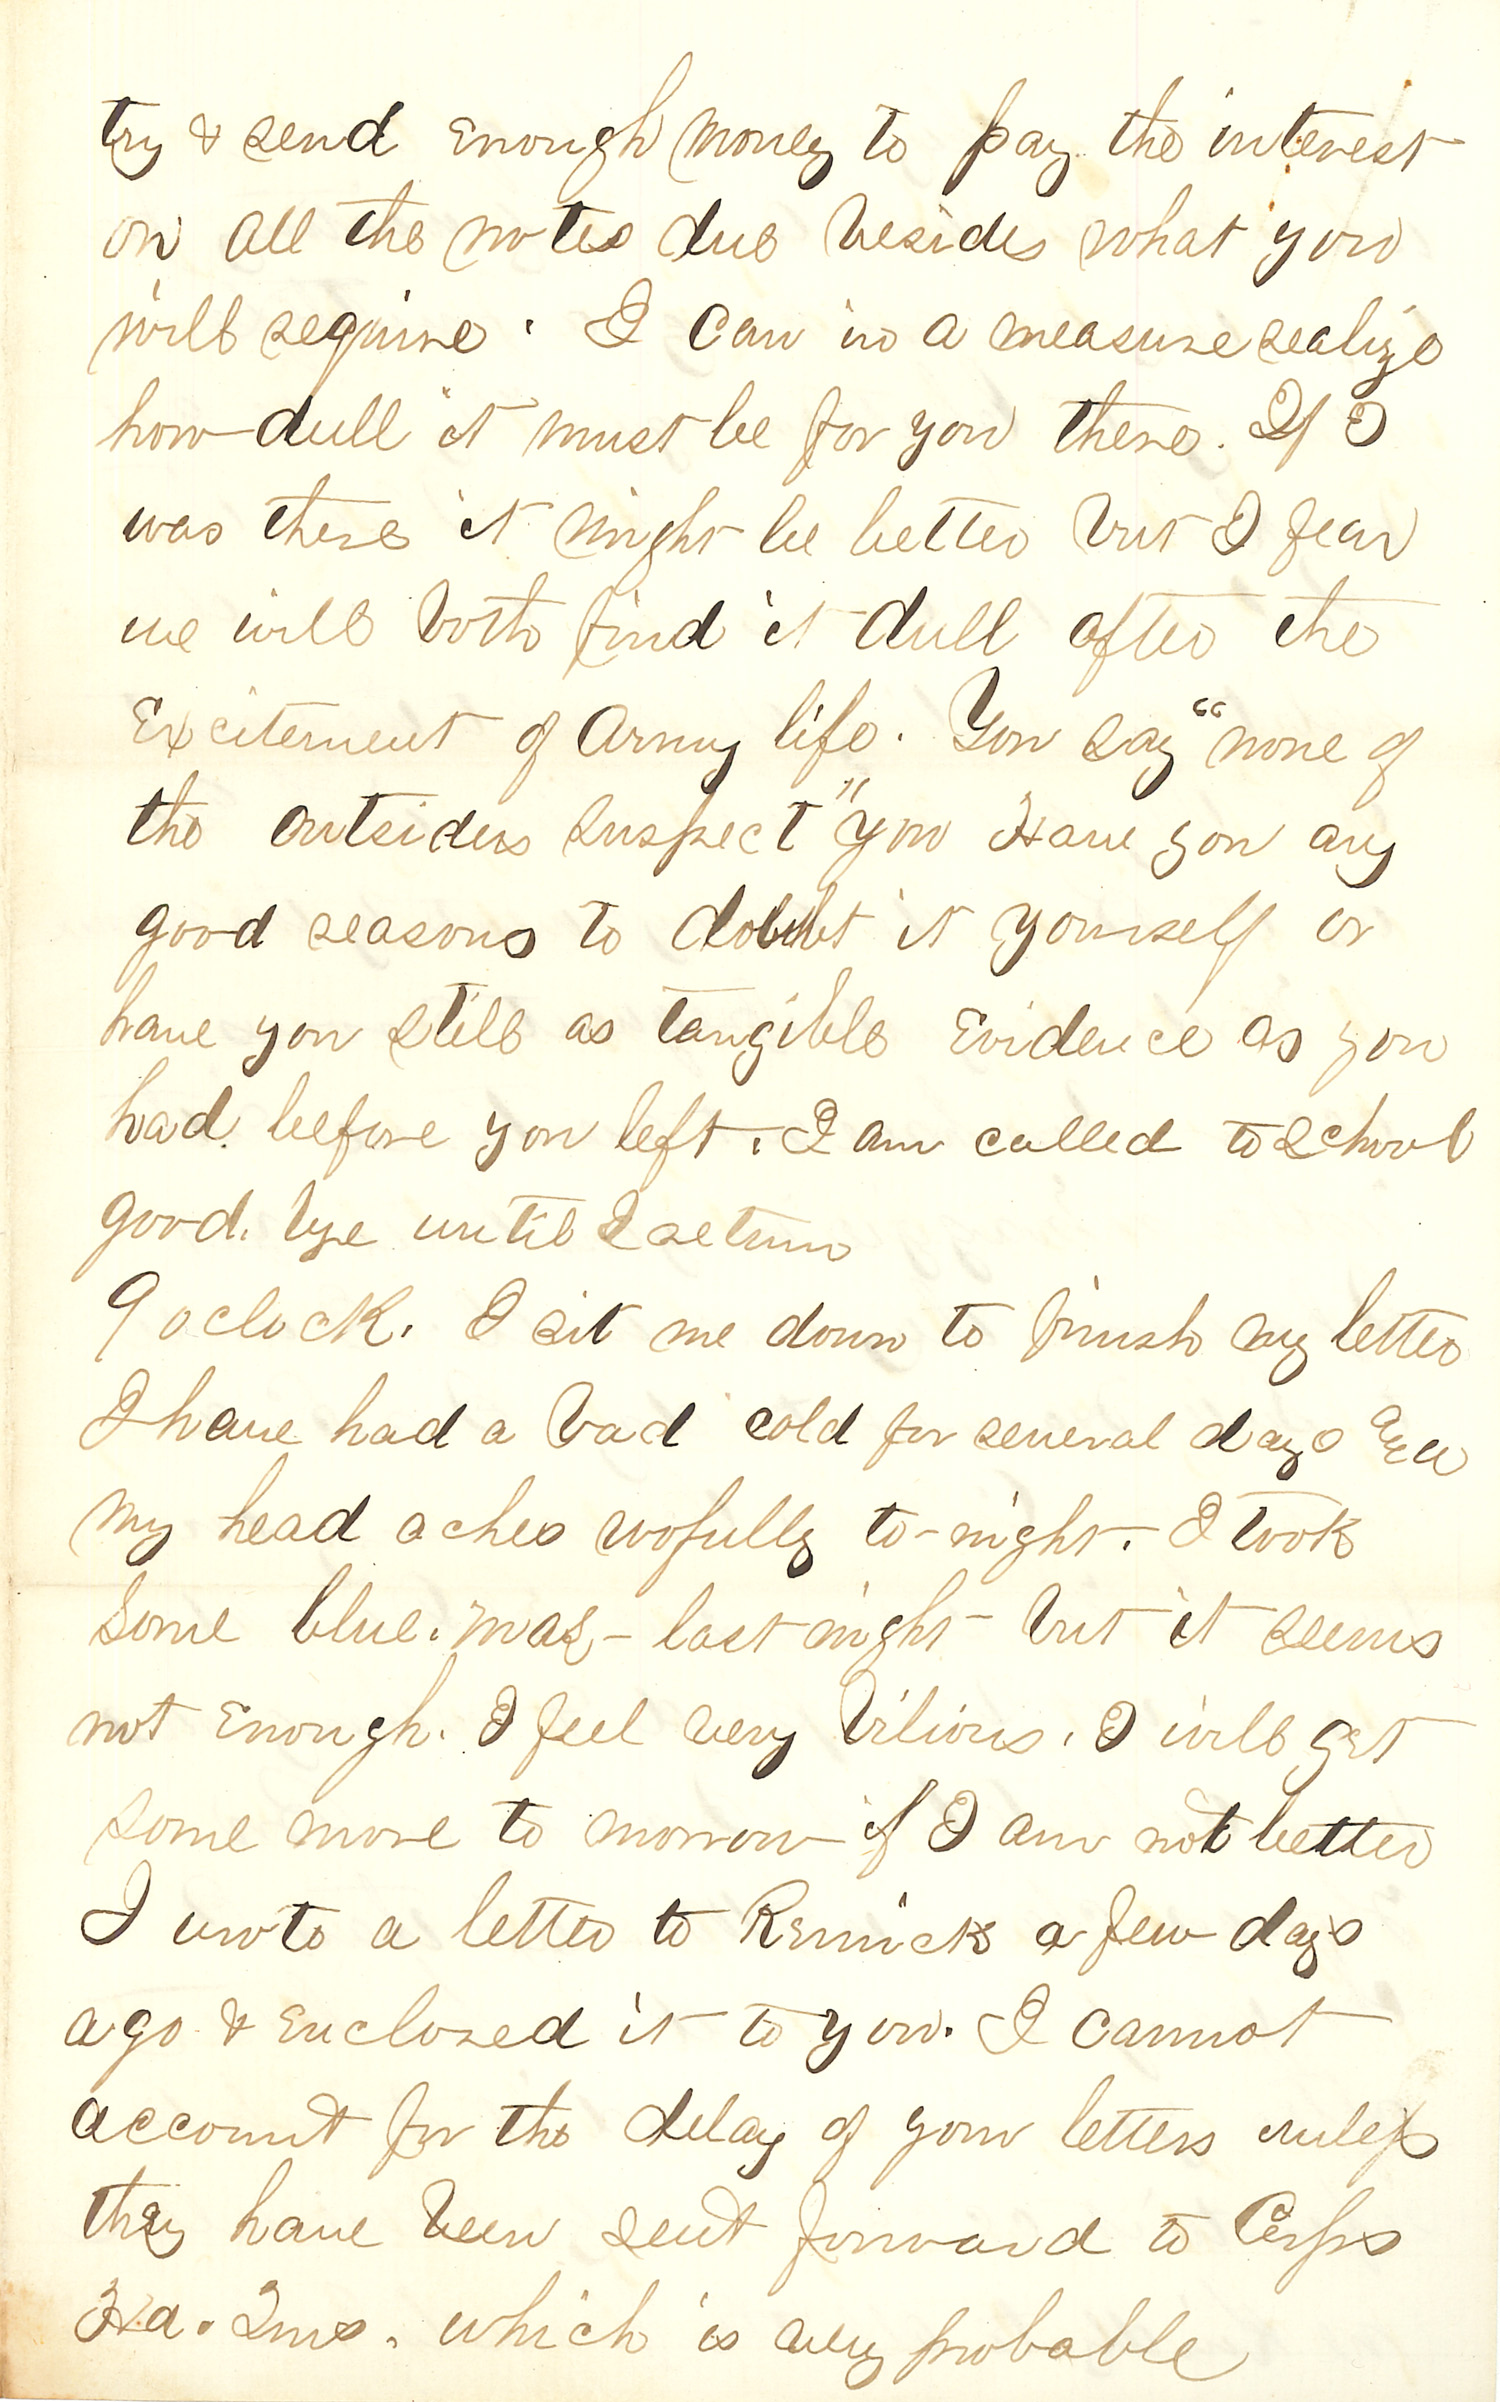 Joseph Culver Letter, February 12, 1864, Page 3